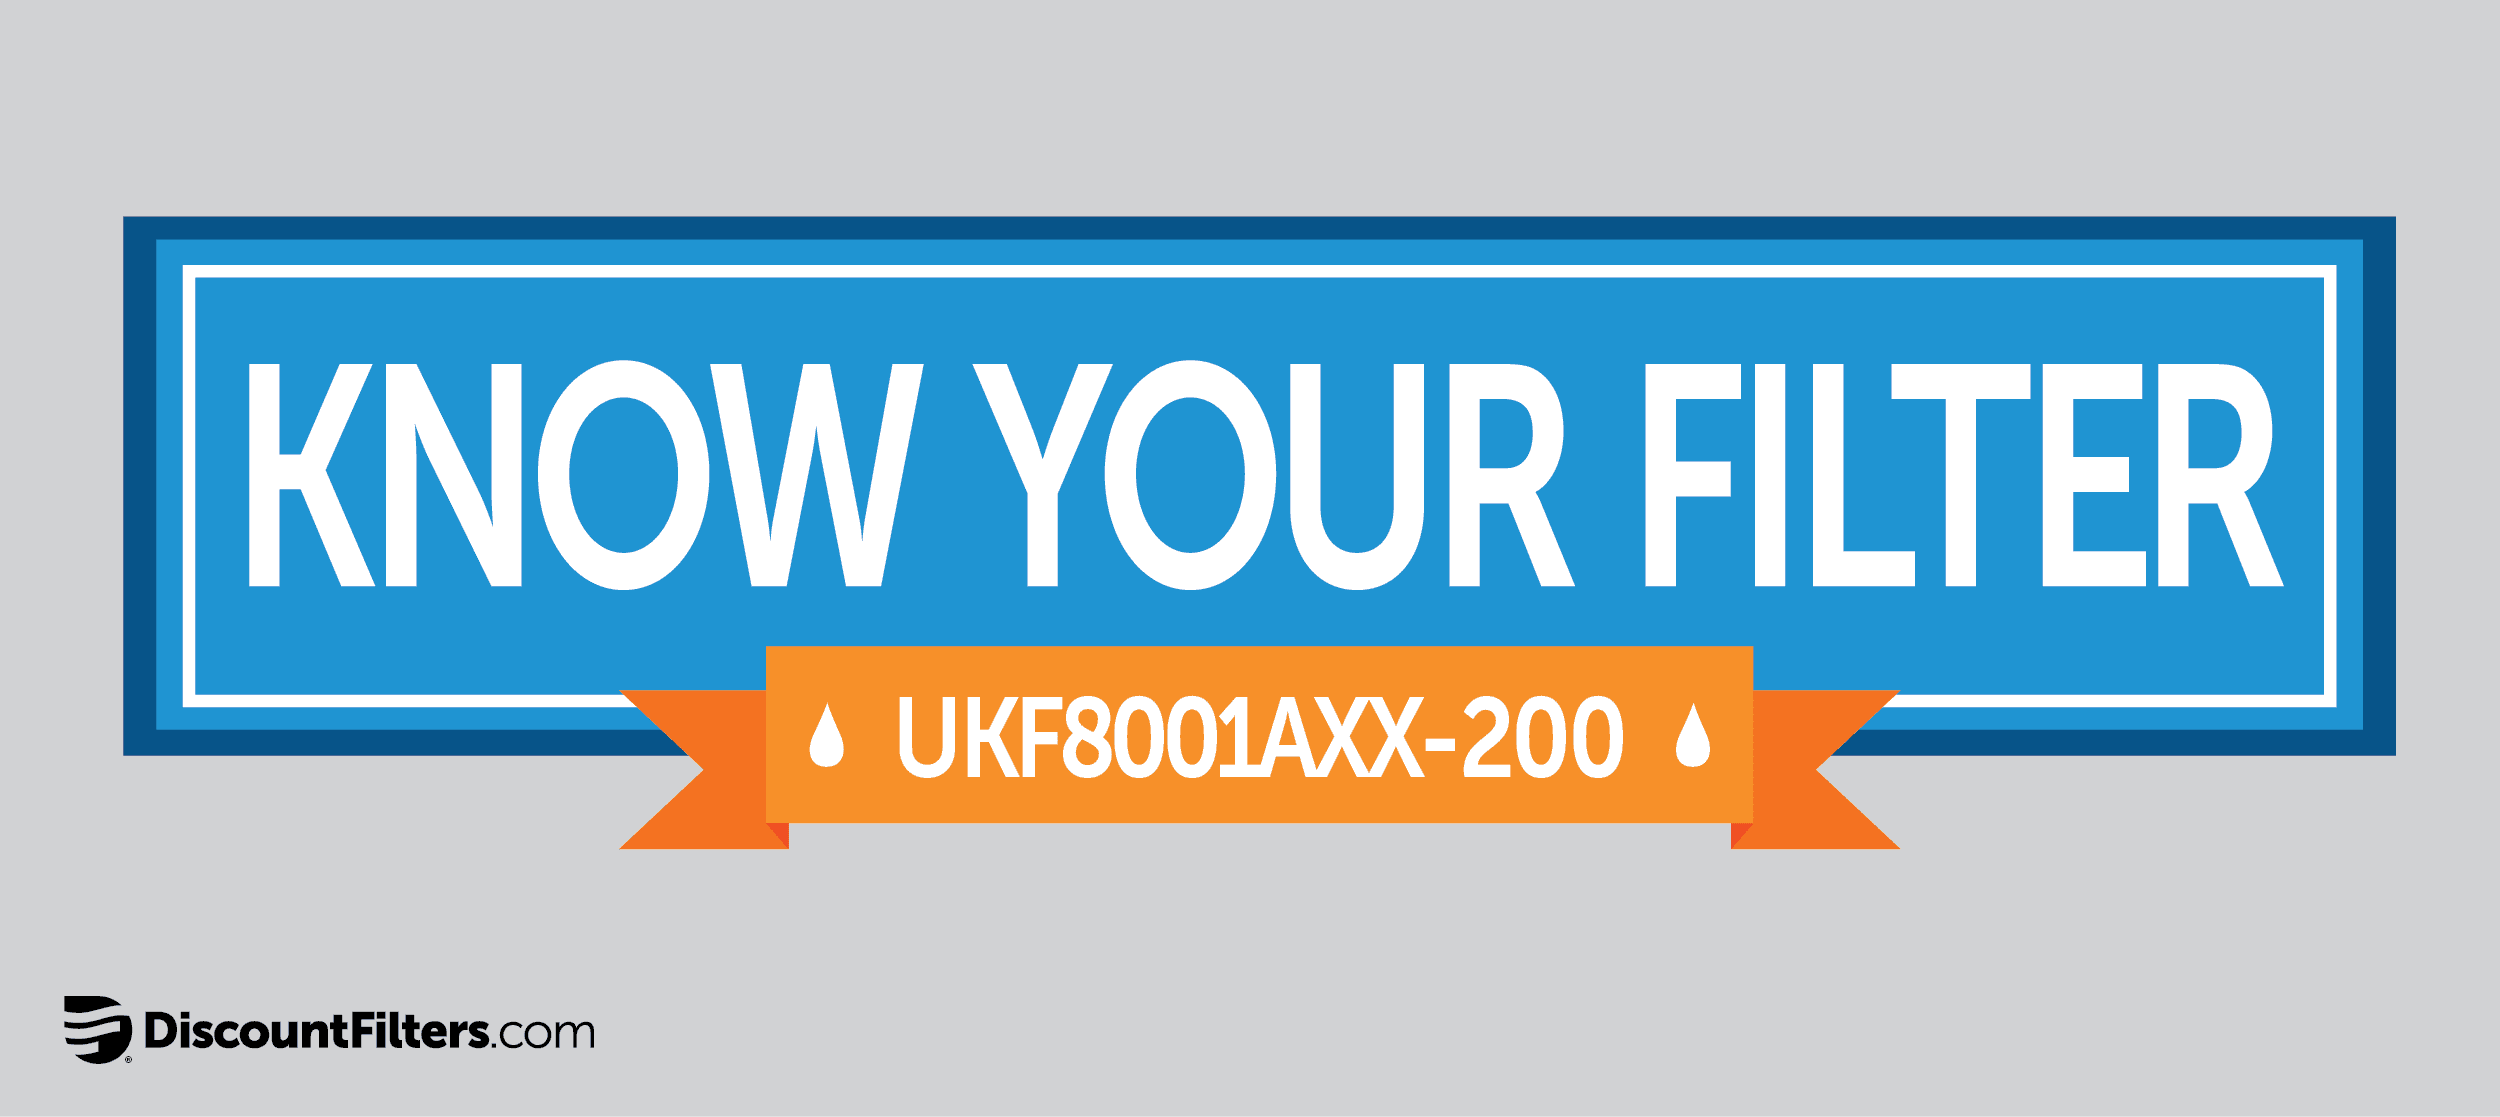 know your ukf8001 replacement filter: ukf8001axx-200